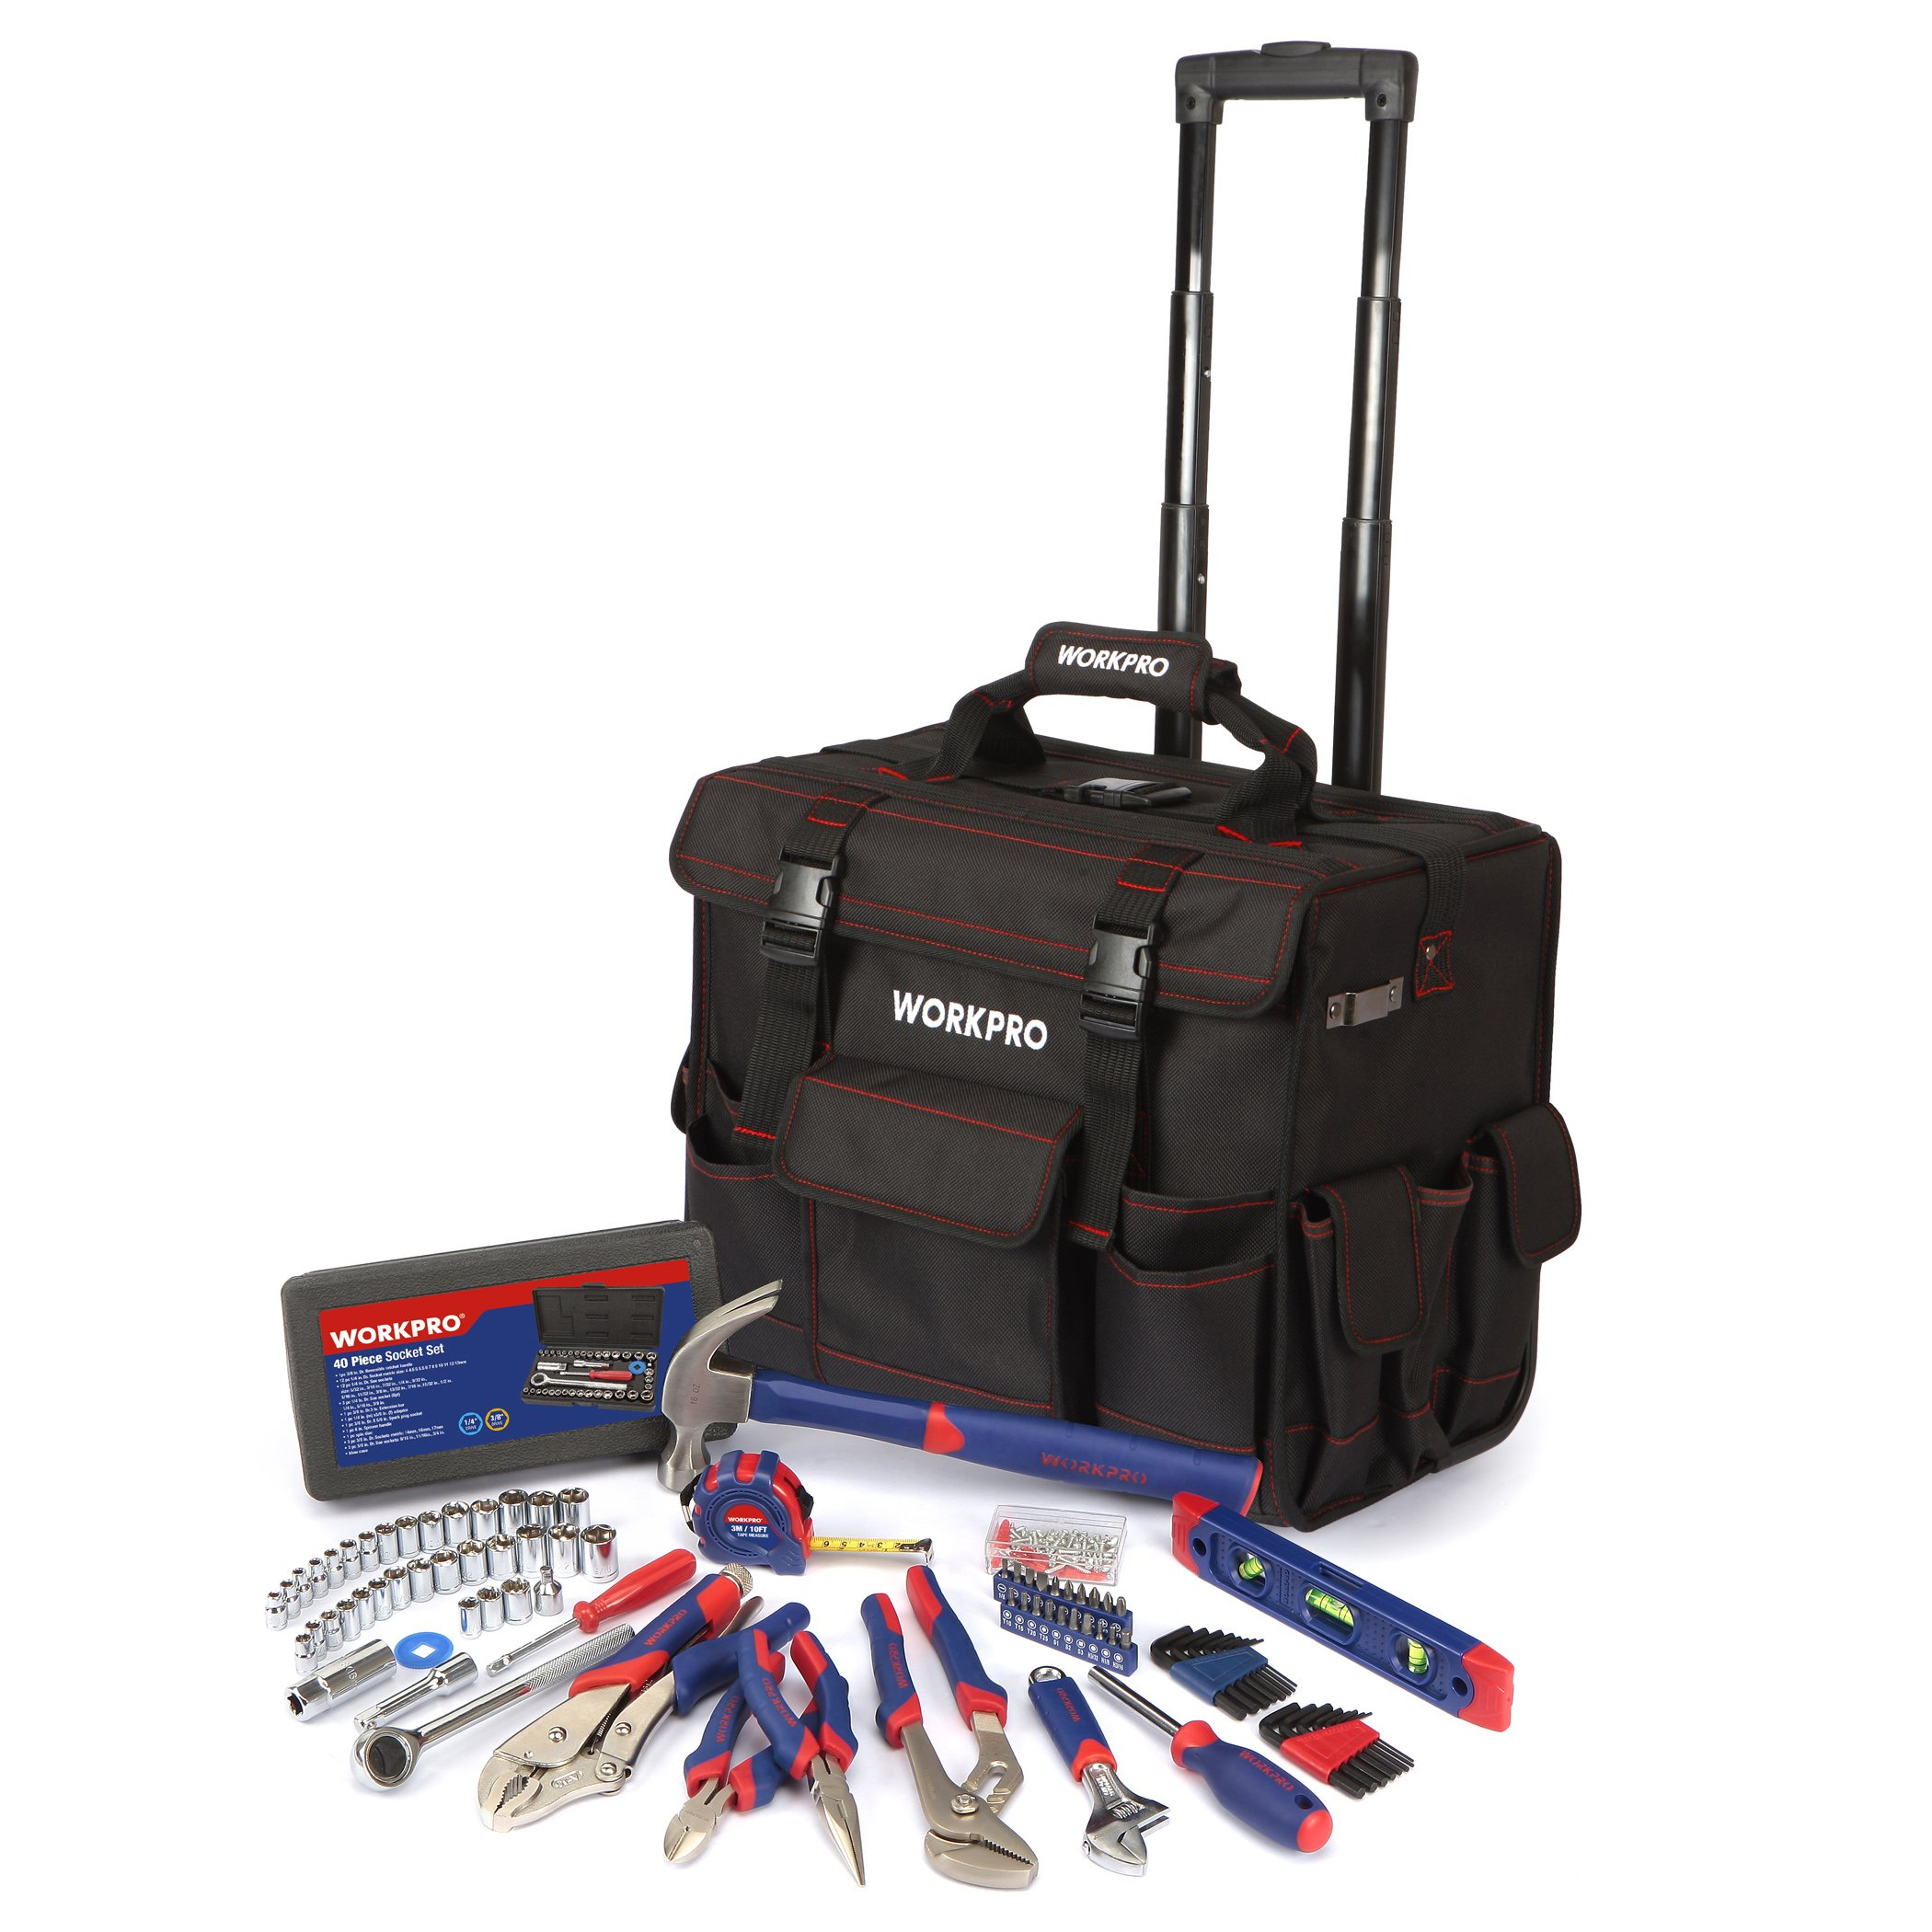 WORKPRO W009029A 176 -Pieces Tool Set With Tool Trolley  Bag, Chrome-vanadium Steel Home Tool Set